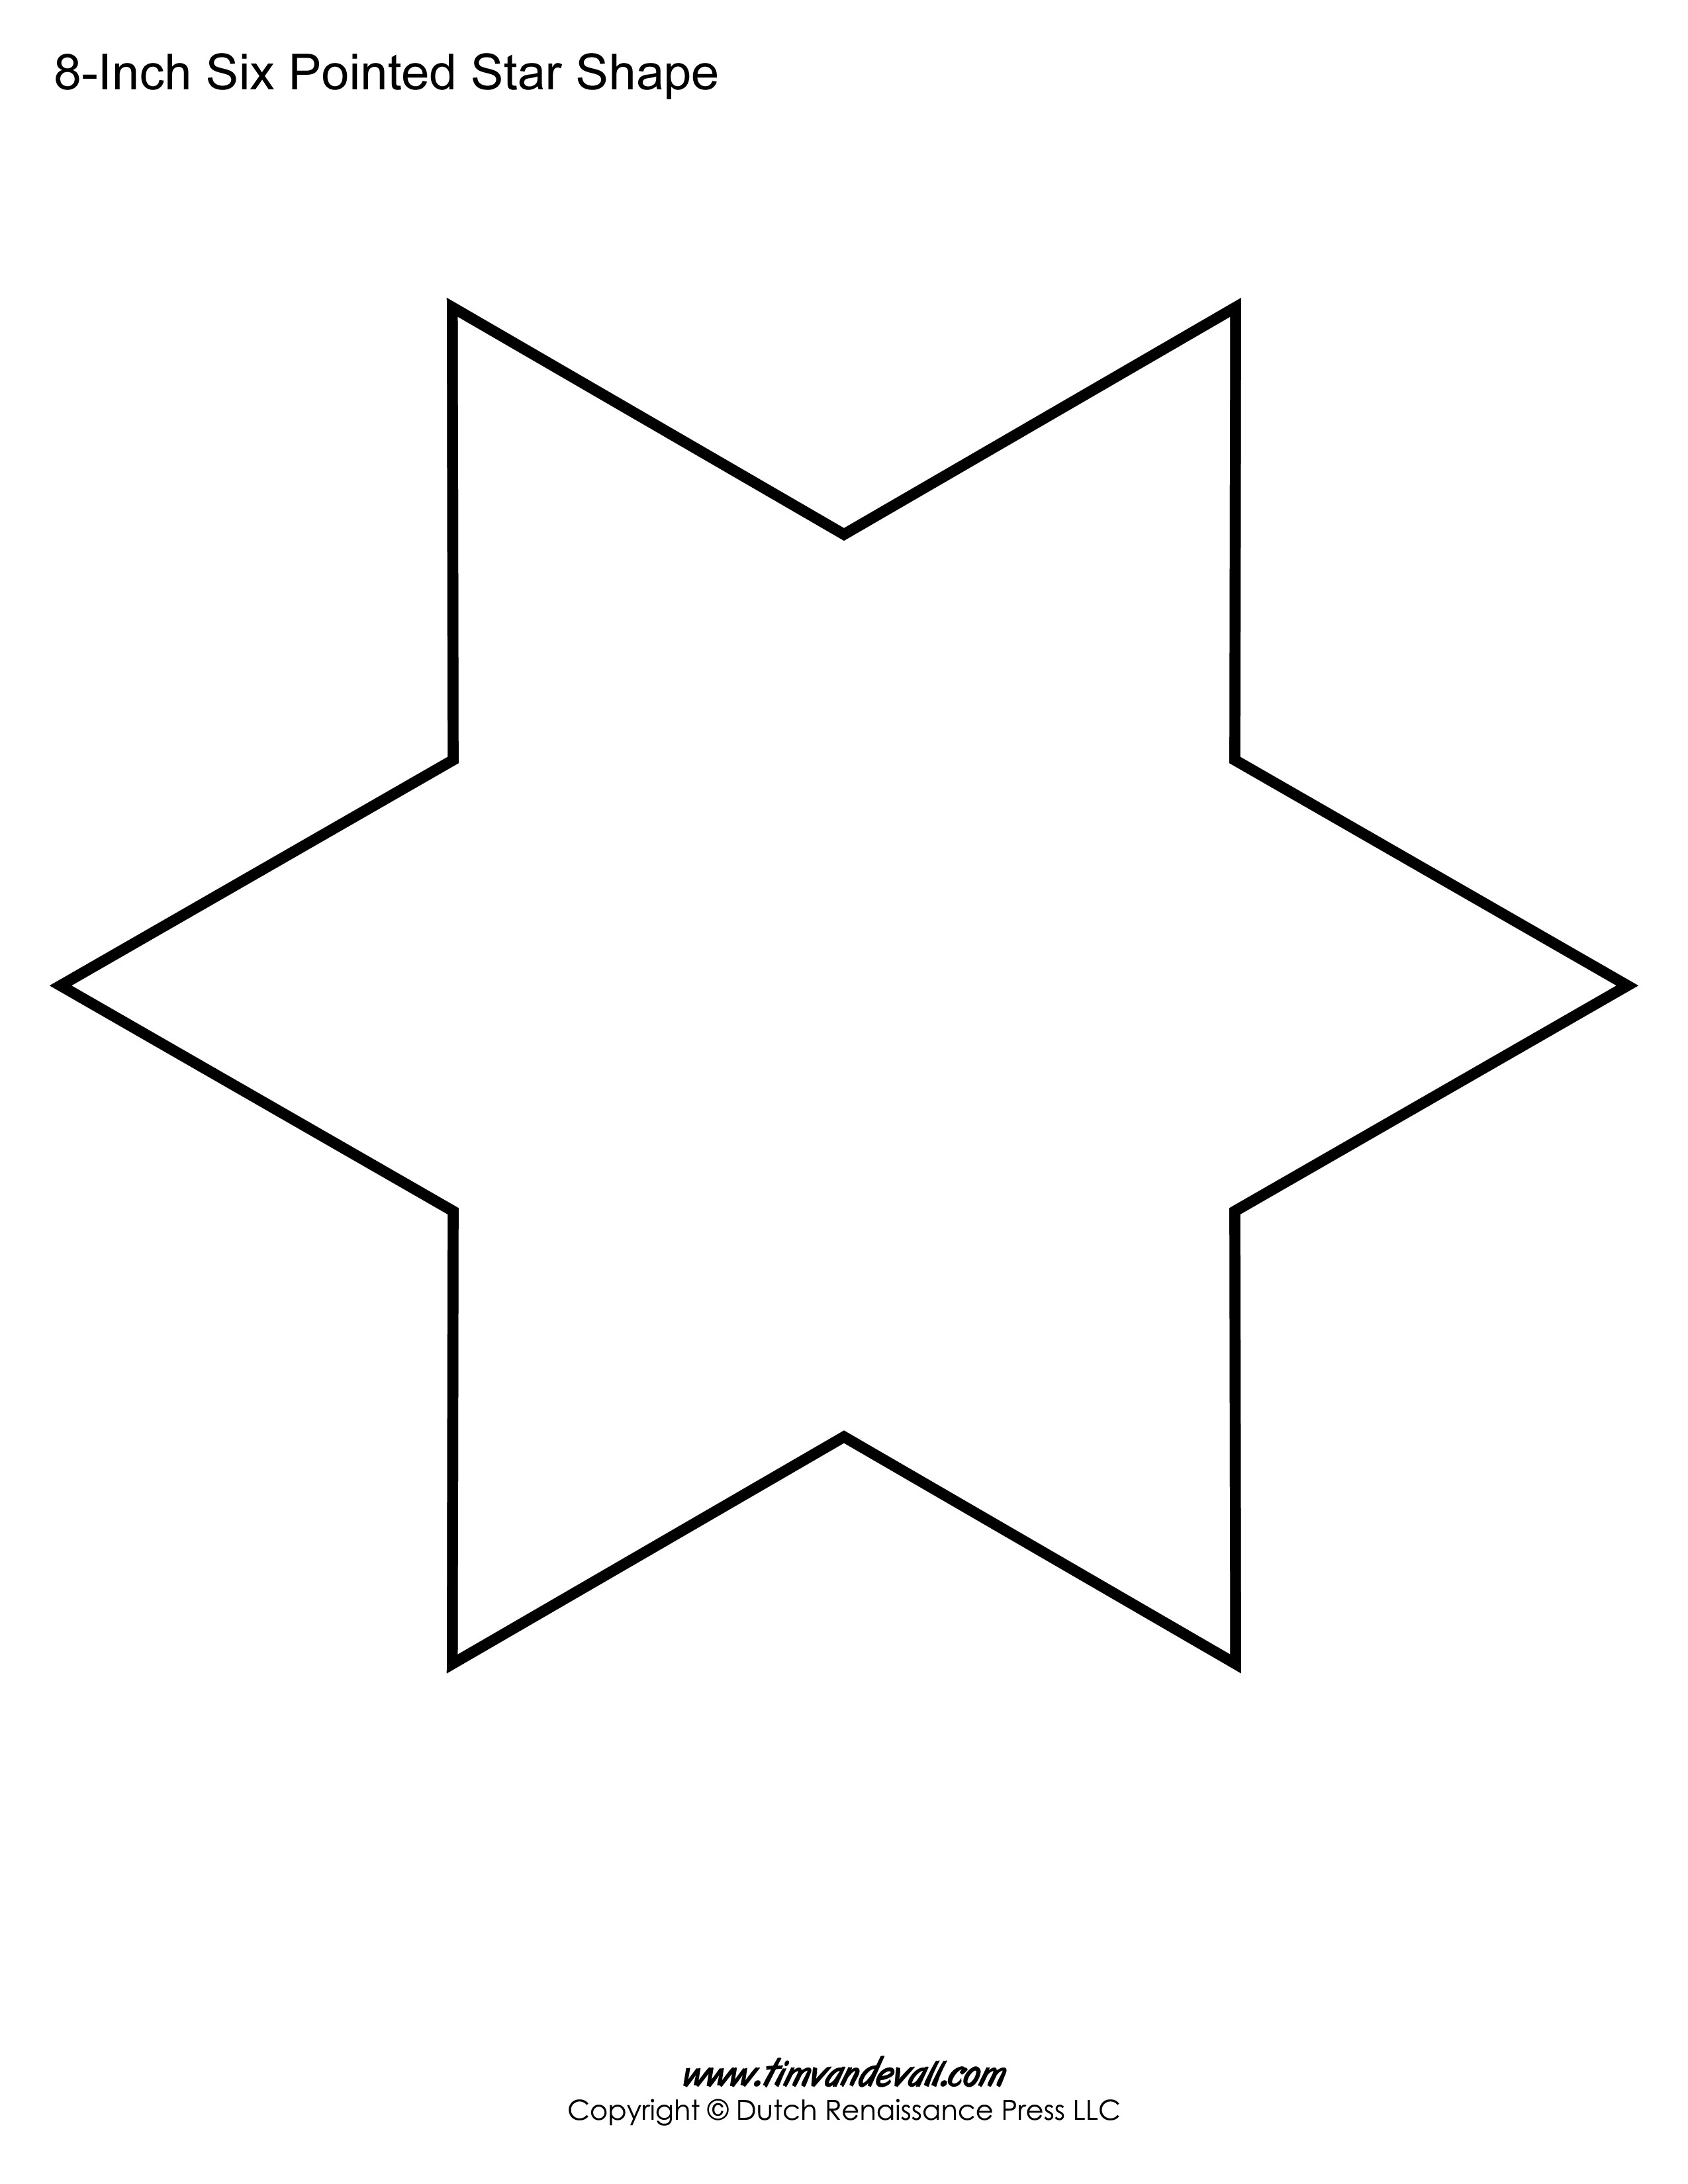 Shape clipart six. A sided thatswhatsup polygon